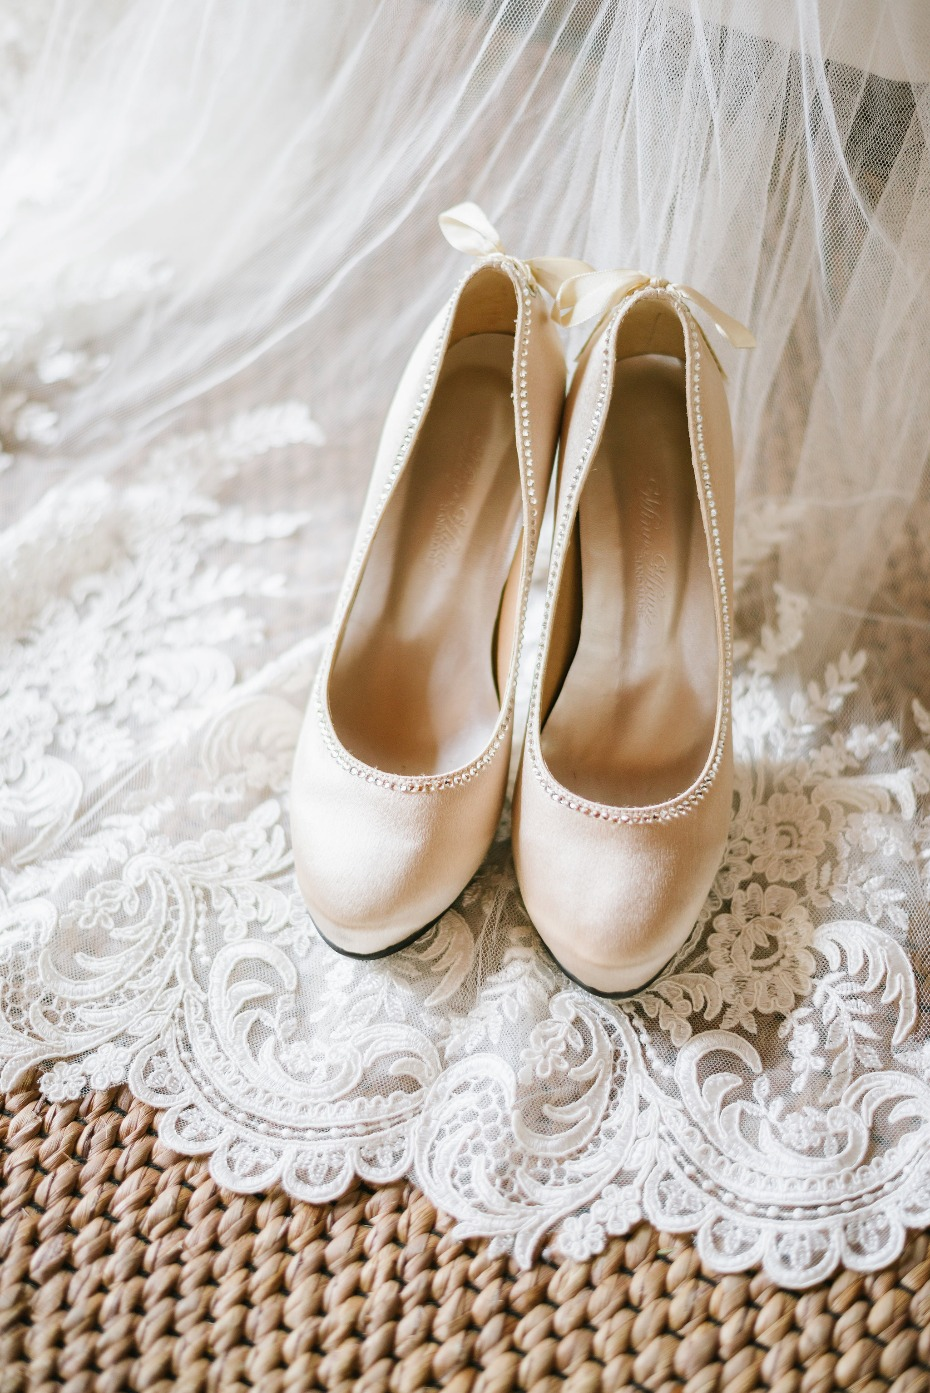 Pretty wedding heels